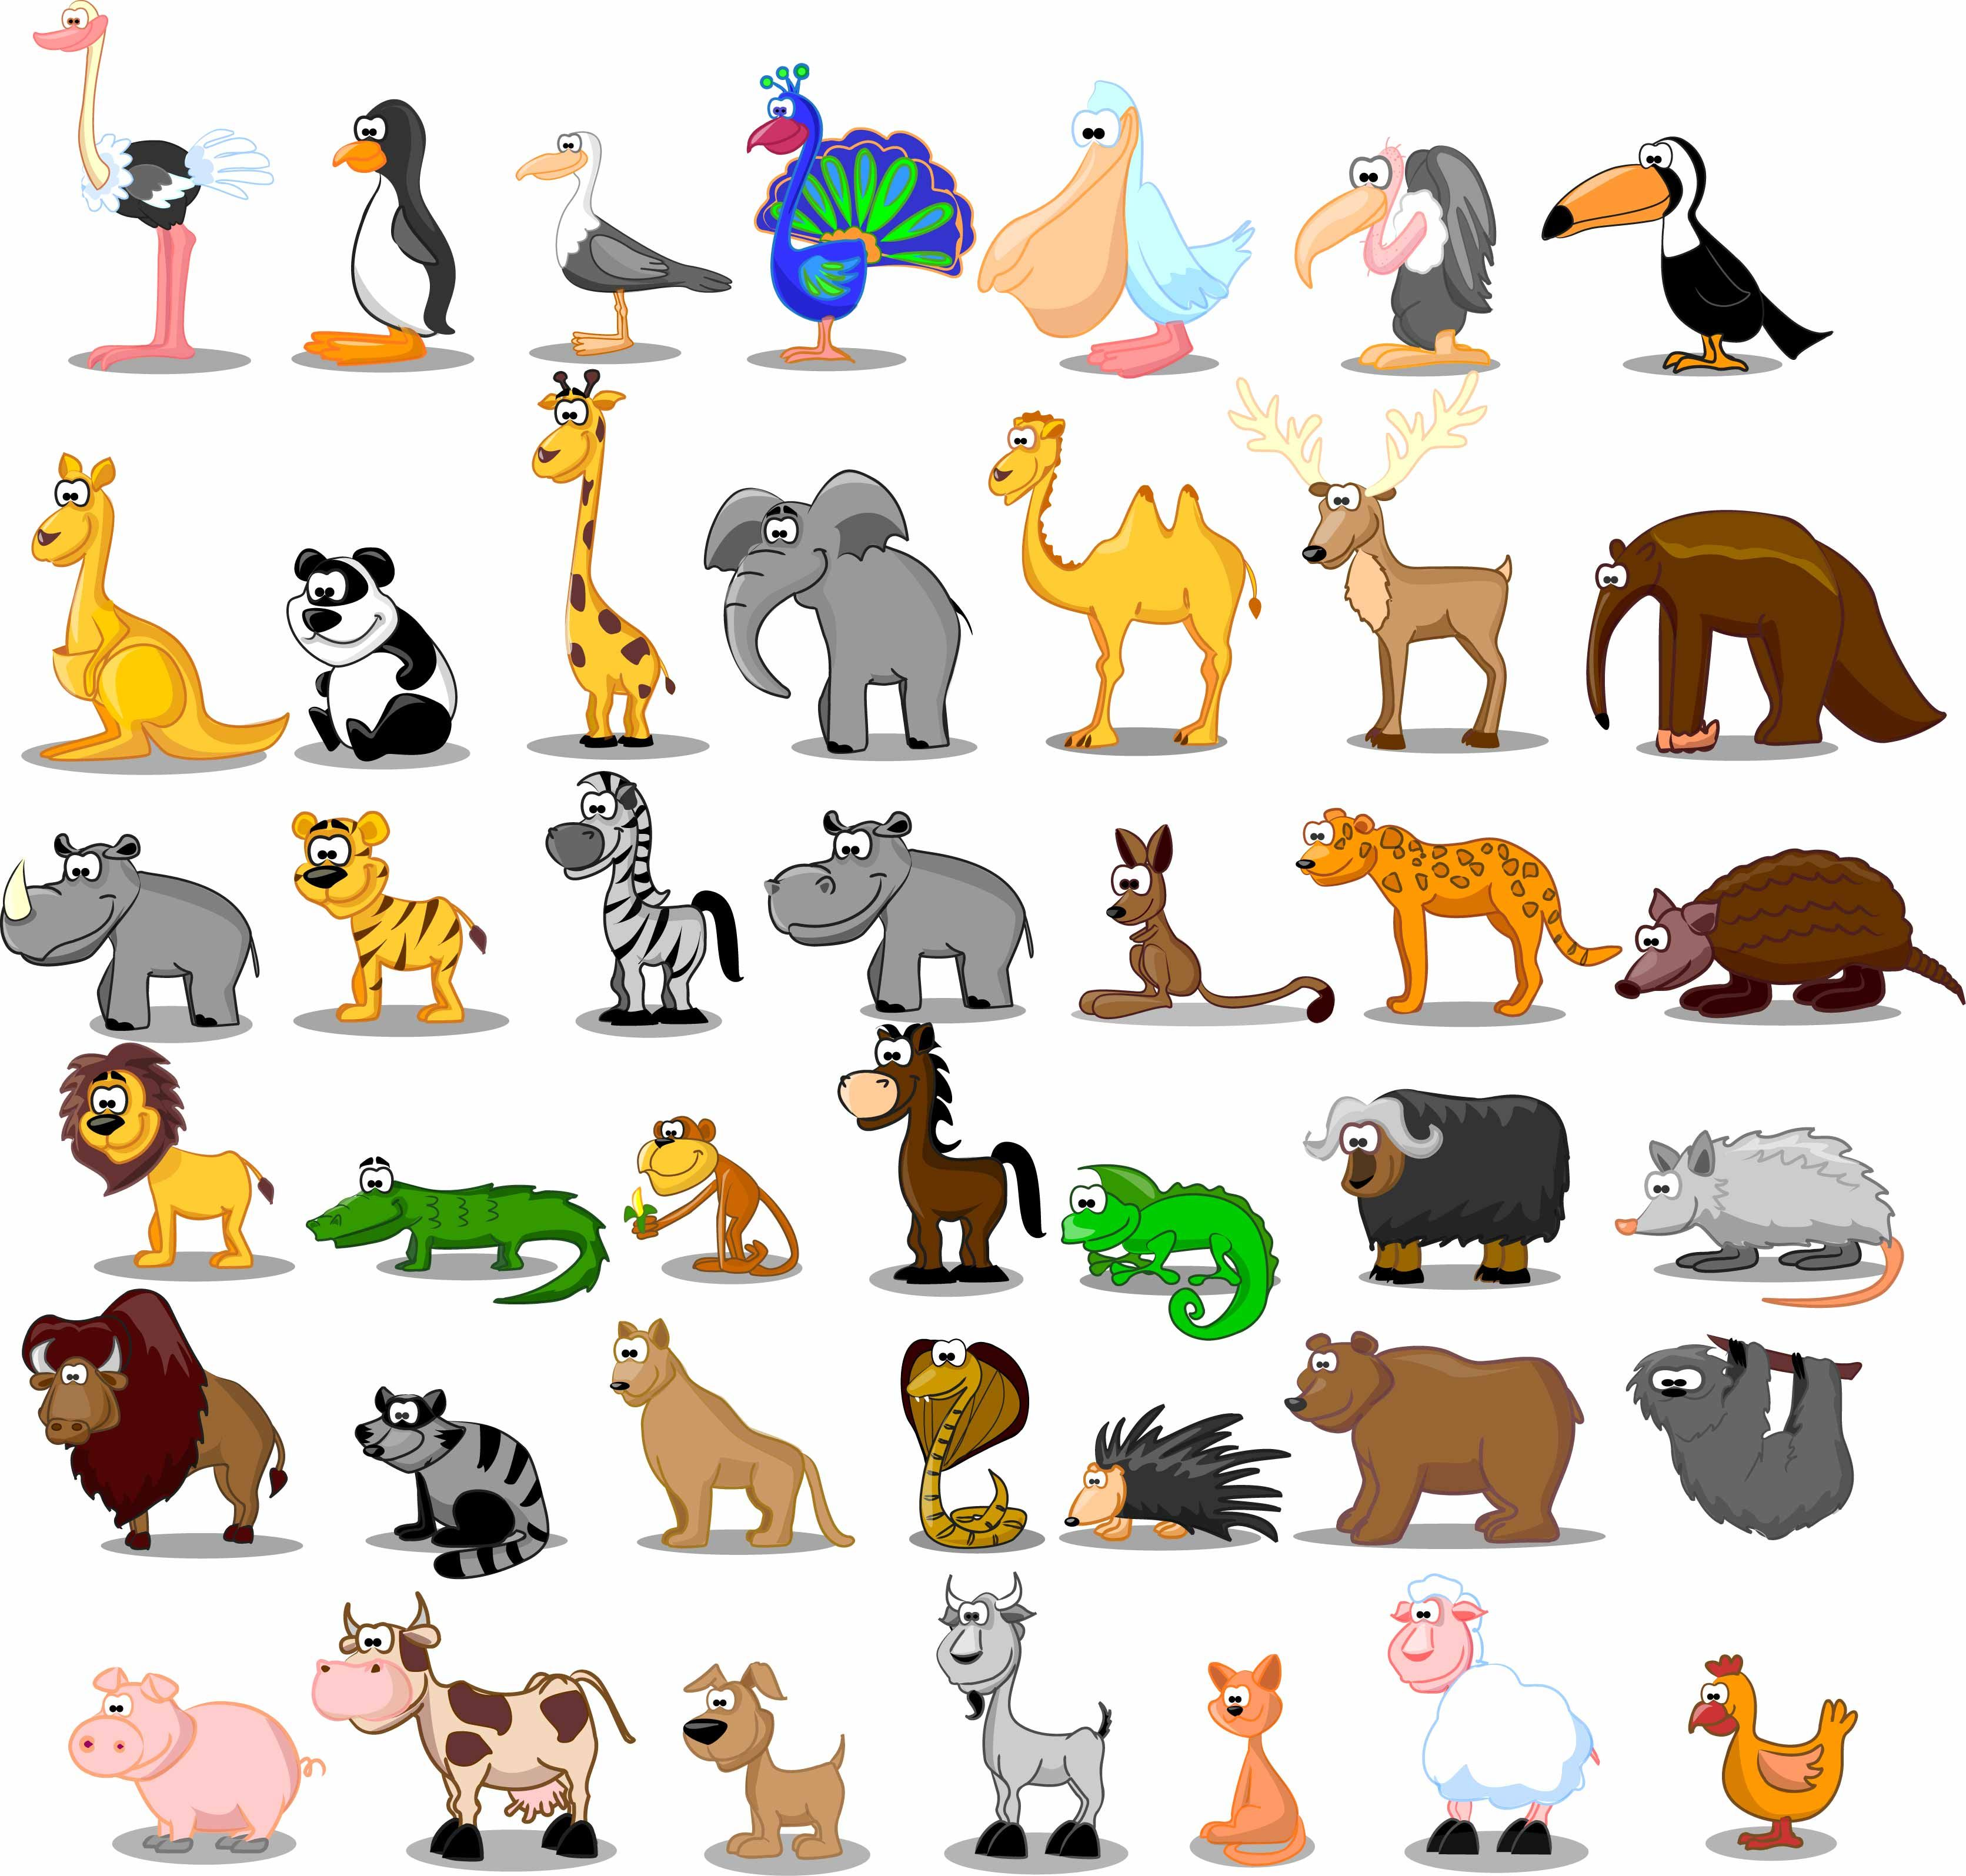 Image result for cartoon animal images clip art Animals